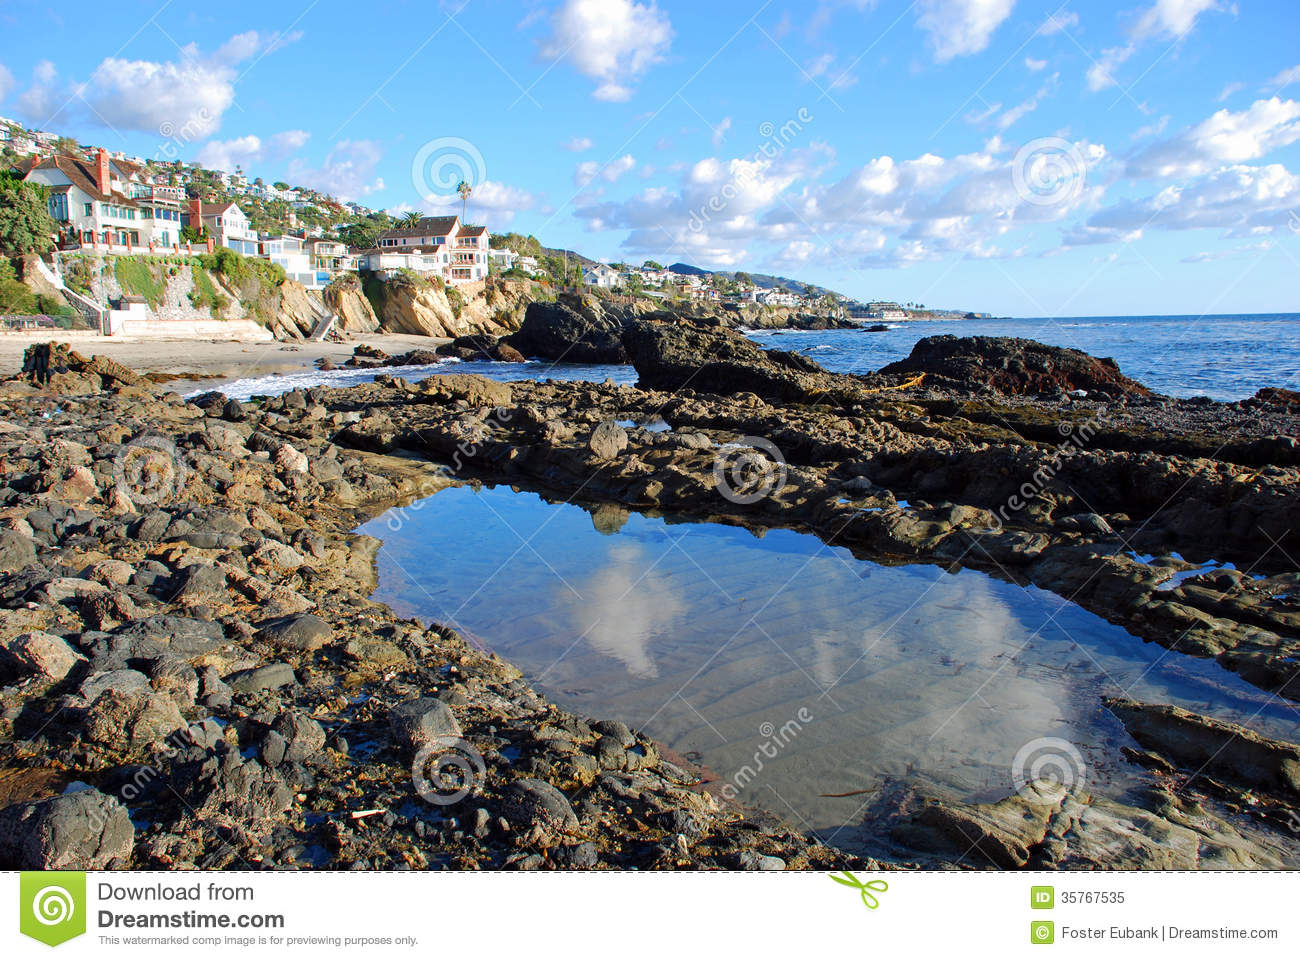 Best Tide Pools in Southern California